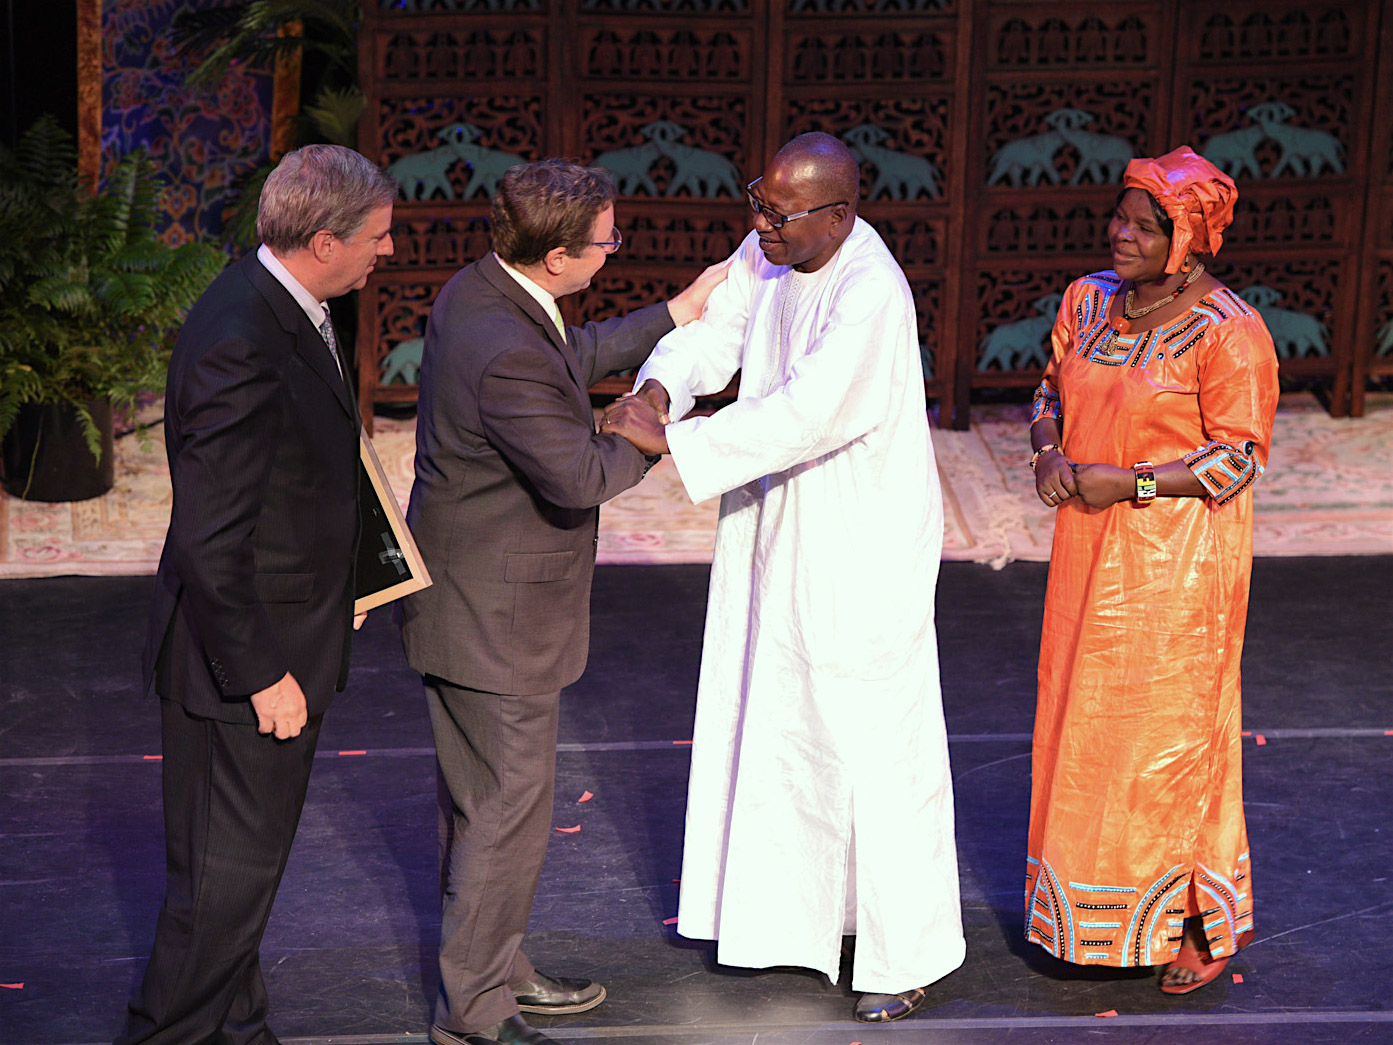 1.Accepting the award for the Mali Elephant Project was project field coordinator Nomba Ganame and Aoua Cherif Doumbia, a colleague representing the government of Mali.  Presenting the award were Cristián Samper, CEO of the Wildlife Conservation Society (left) and Achim Steiner, Administrator of the UN Development Programme.